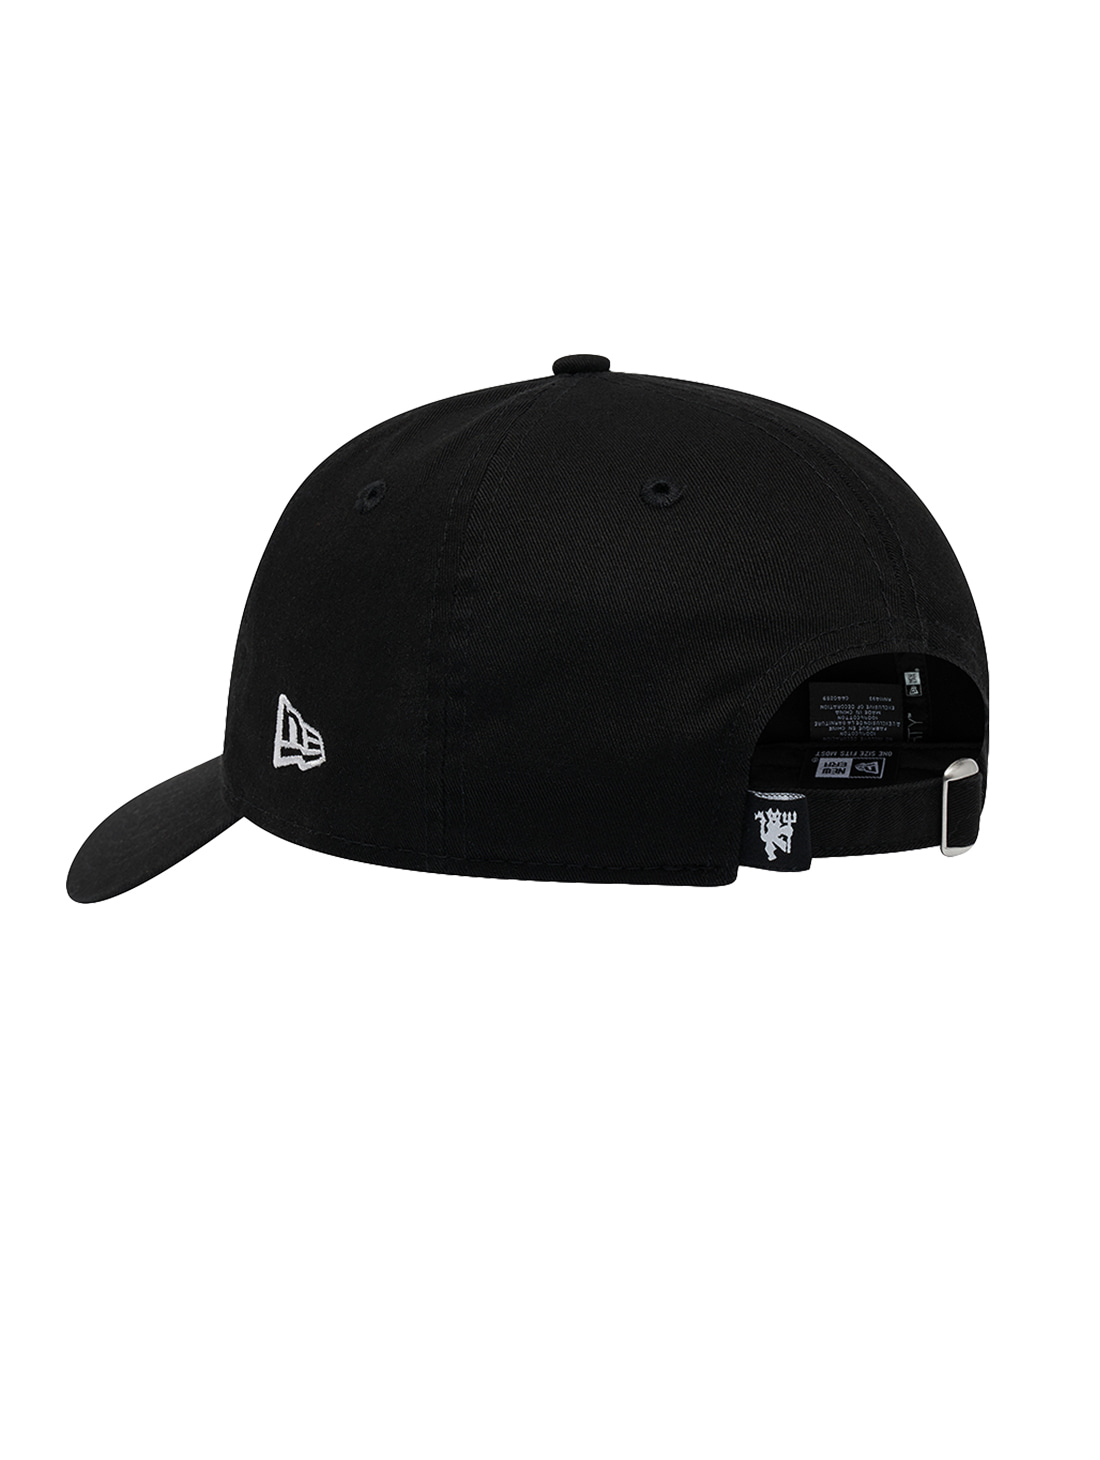 (Sold Out) MAN U 940UNST BALL CAP - BLACK